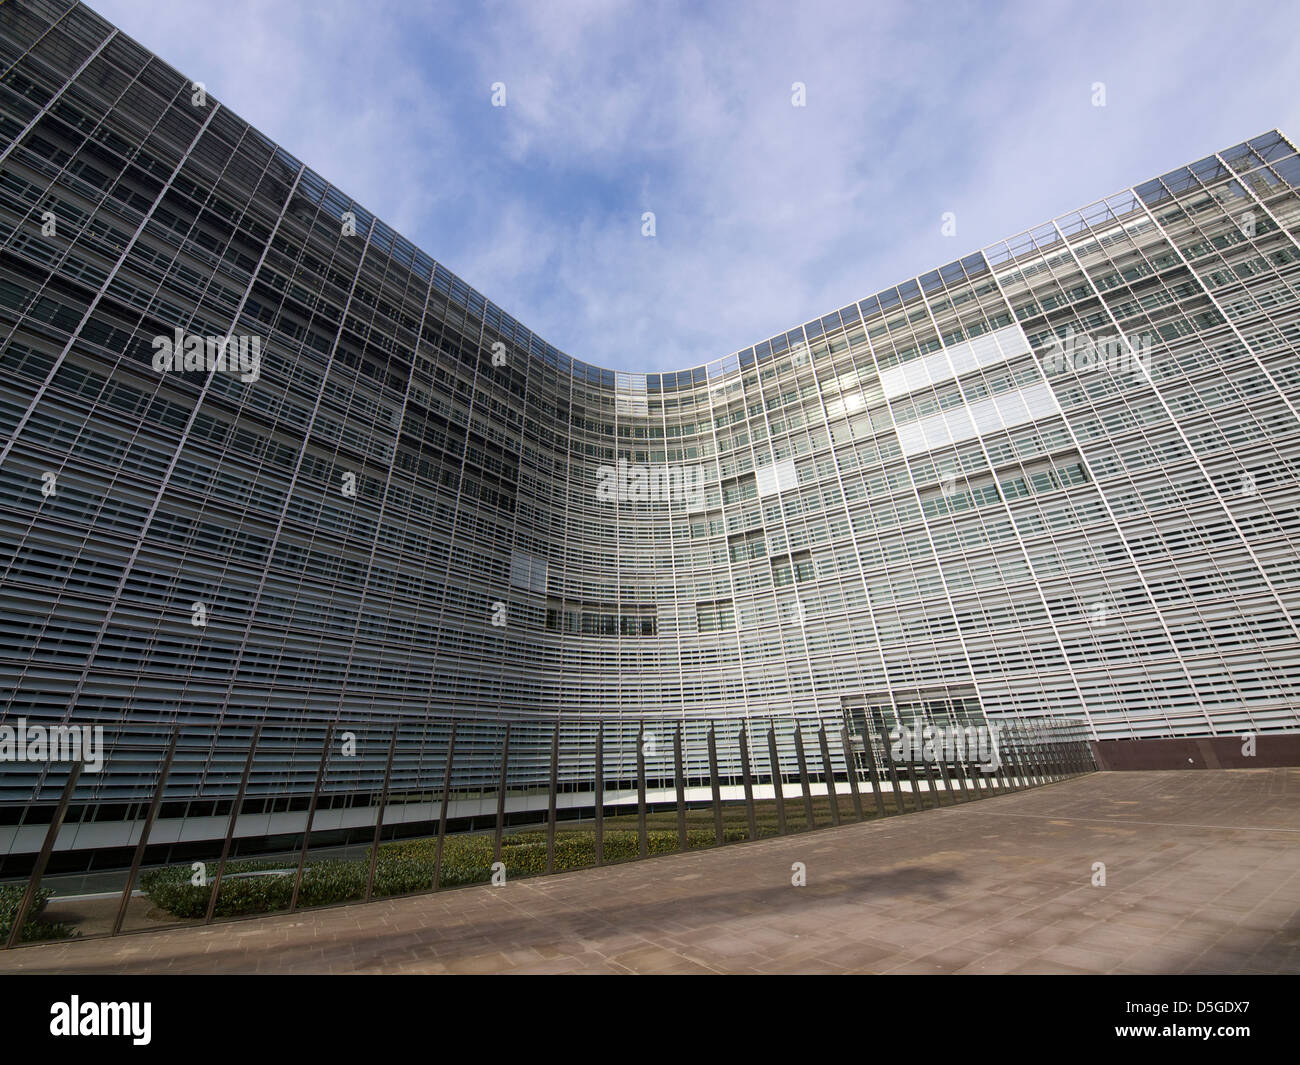 The Berlaymont building of the European Commission is enormous. Brussels, Belgium - Stock Image